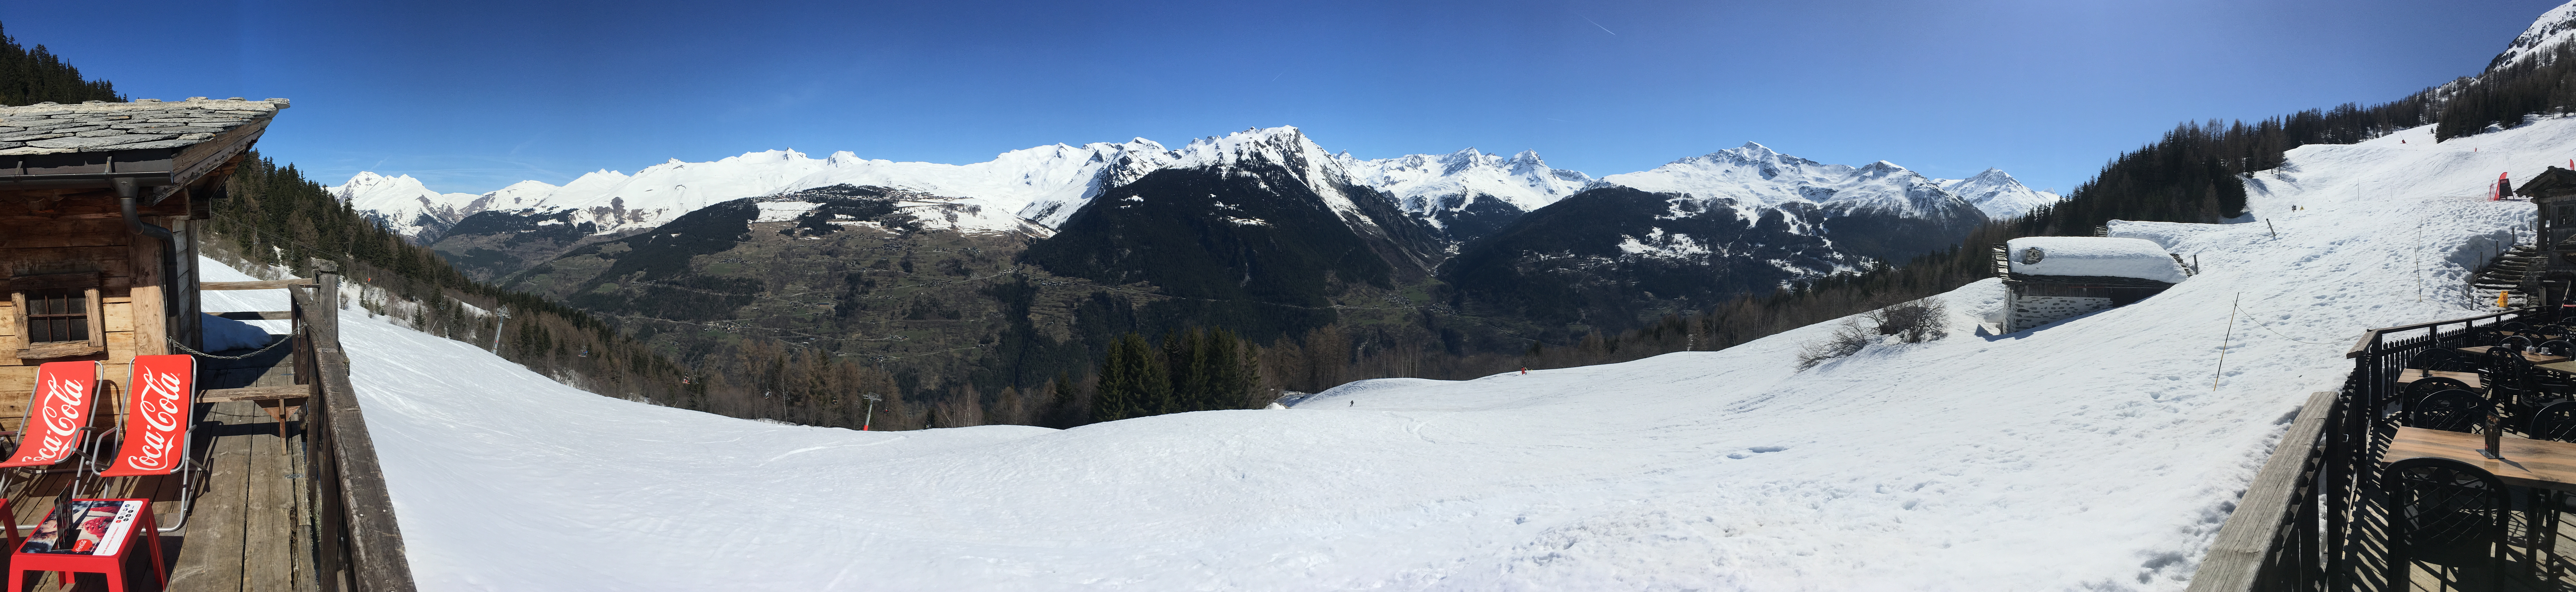 panorama from a resturant.jpg